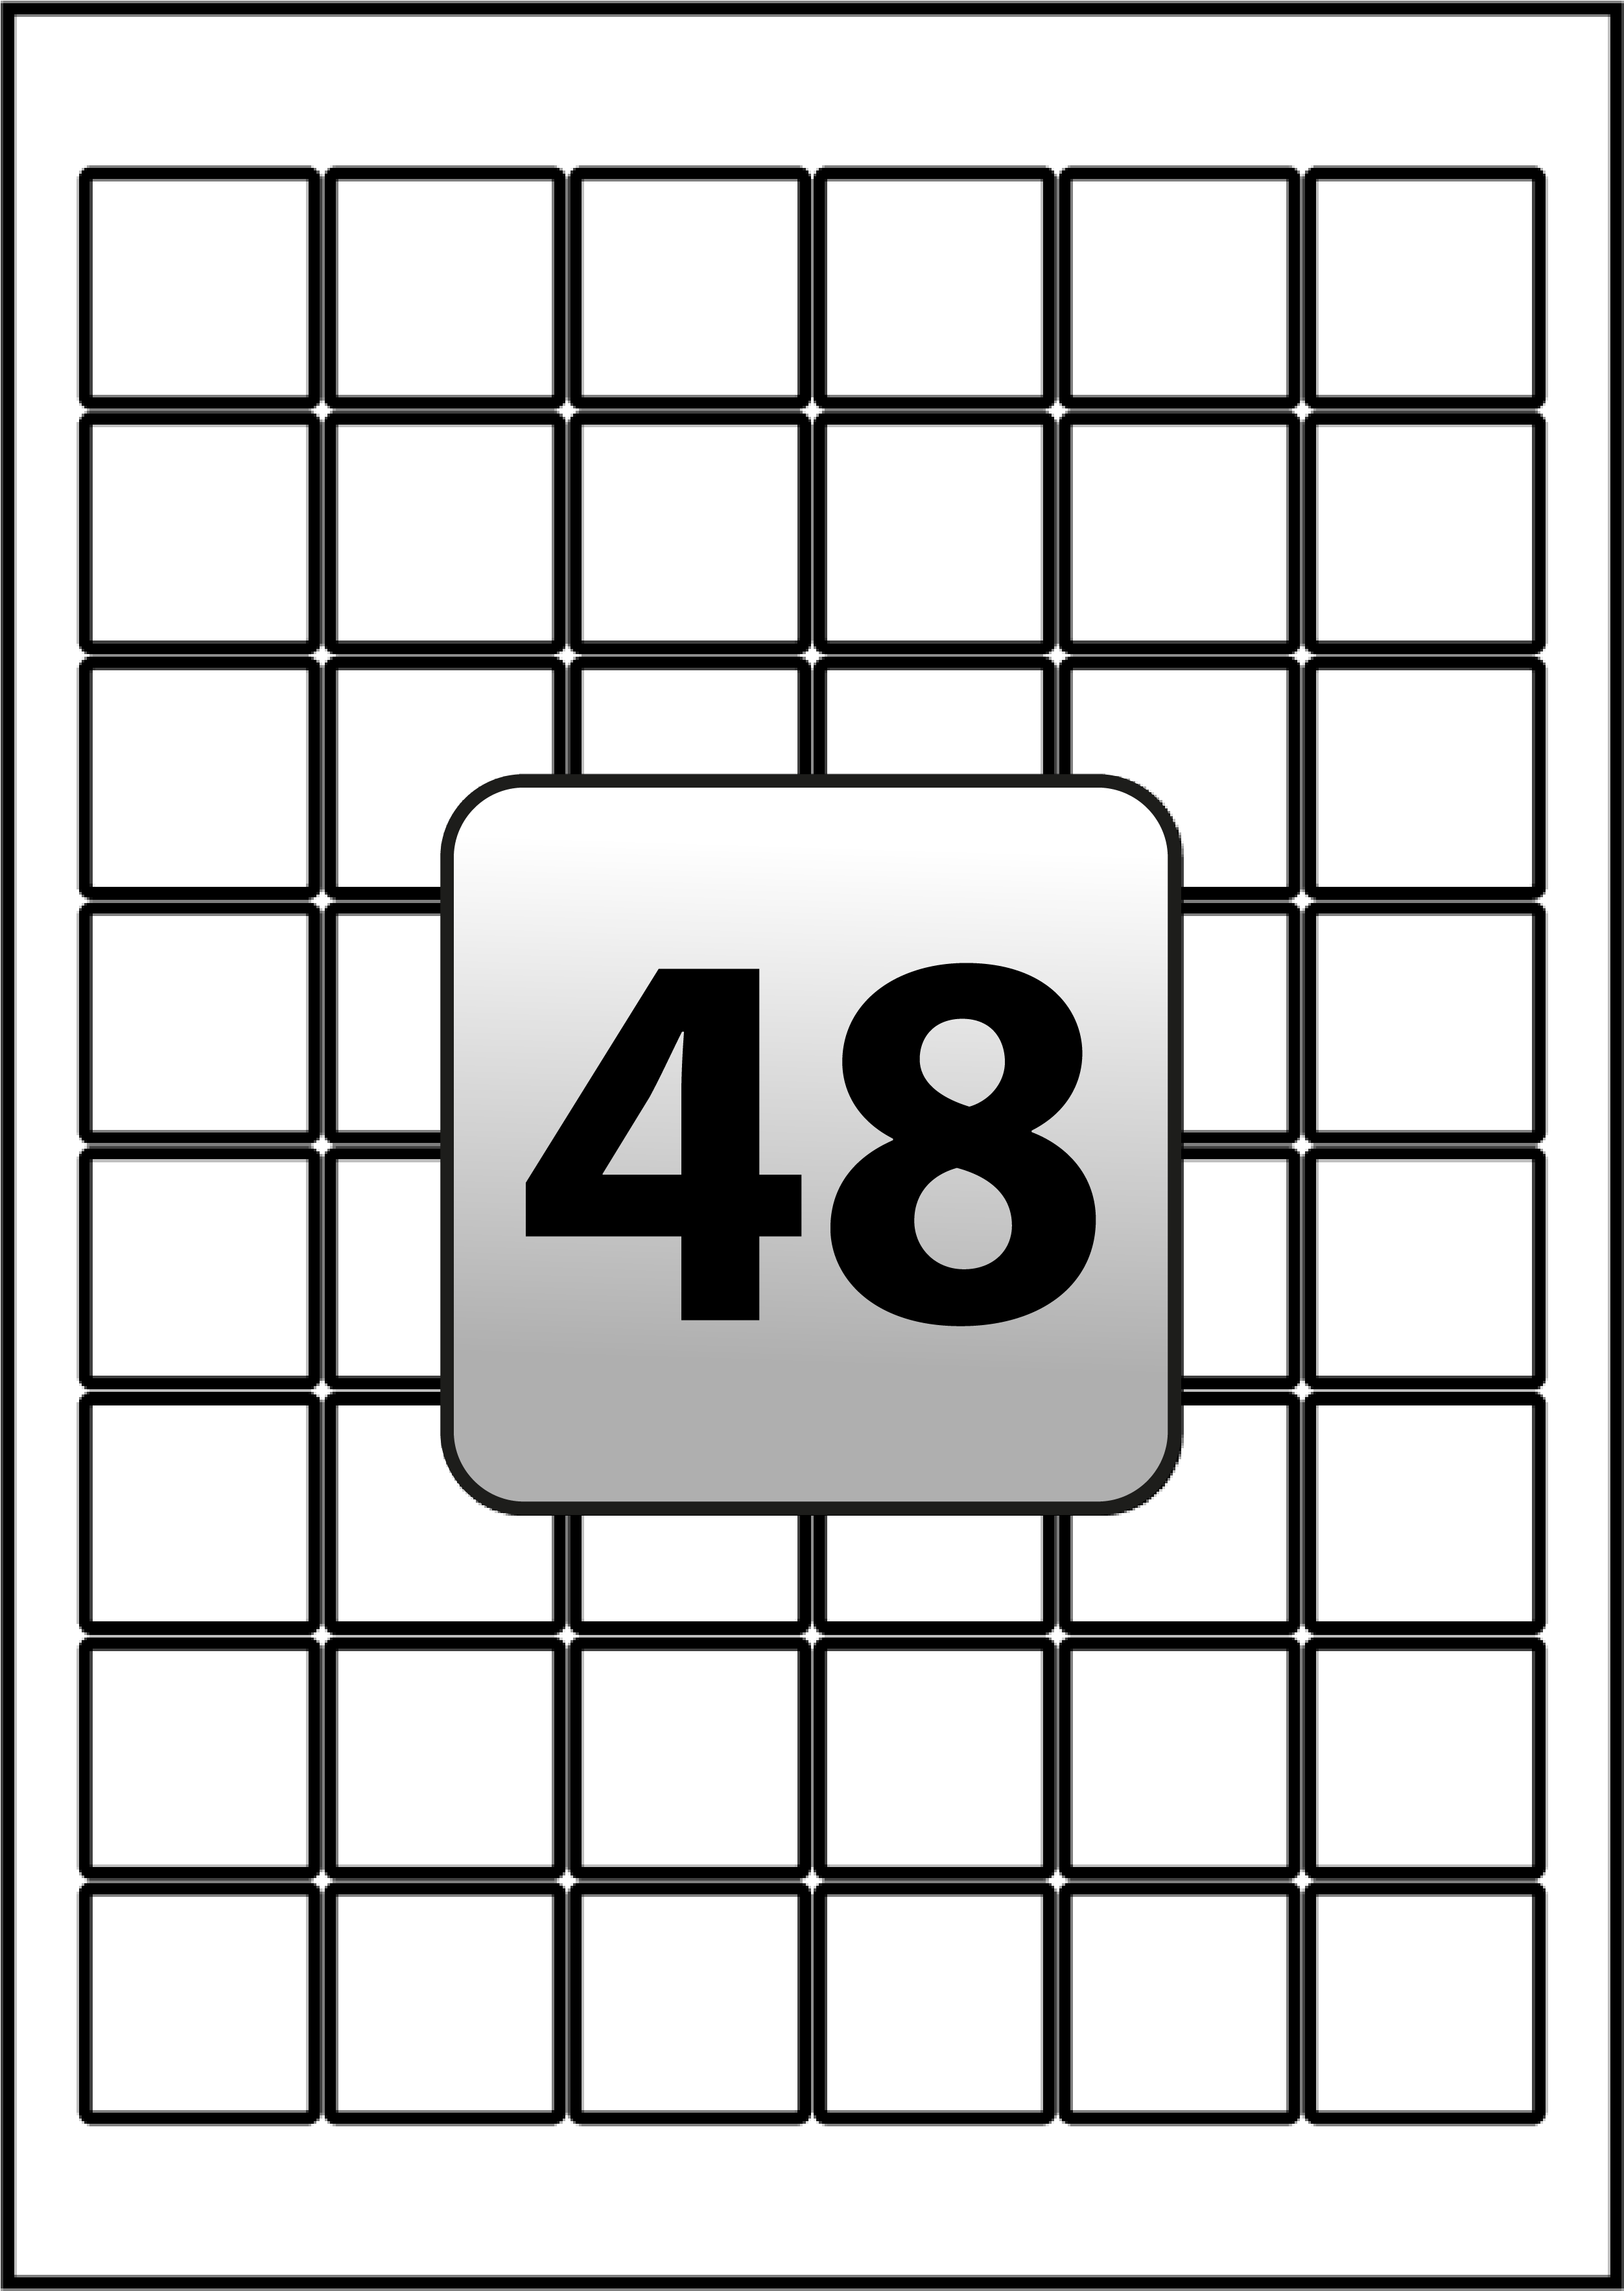 48 inkjet printer labels per a4 sheet 30 mm x 30 mm